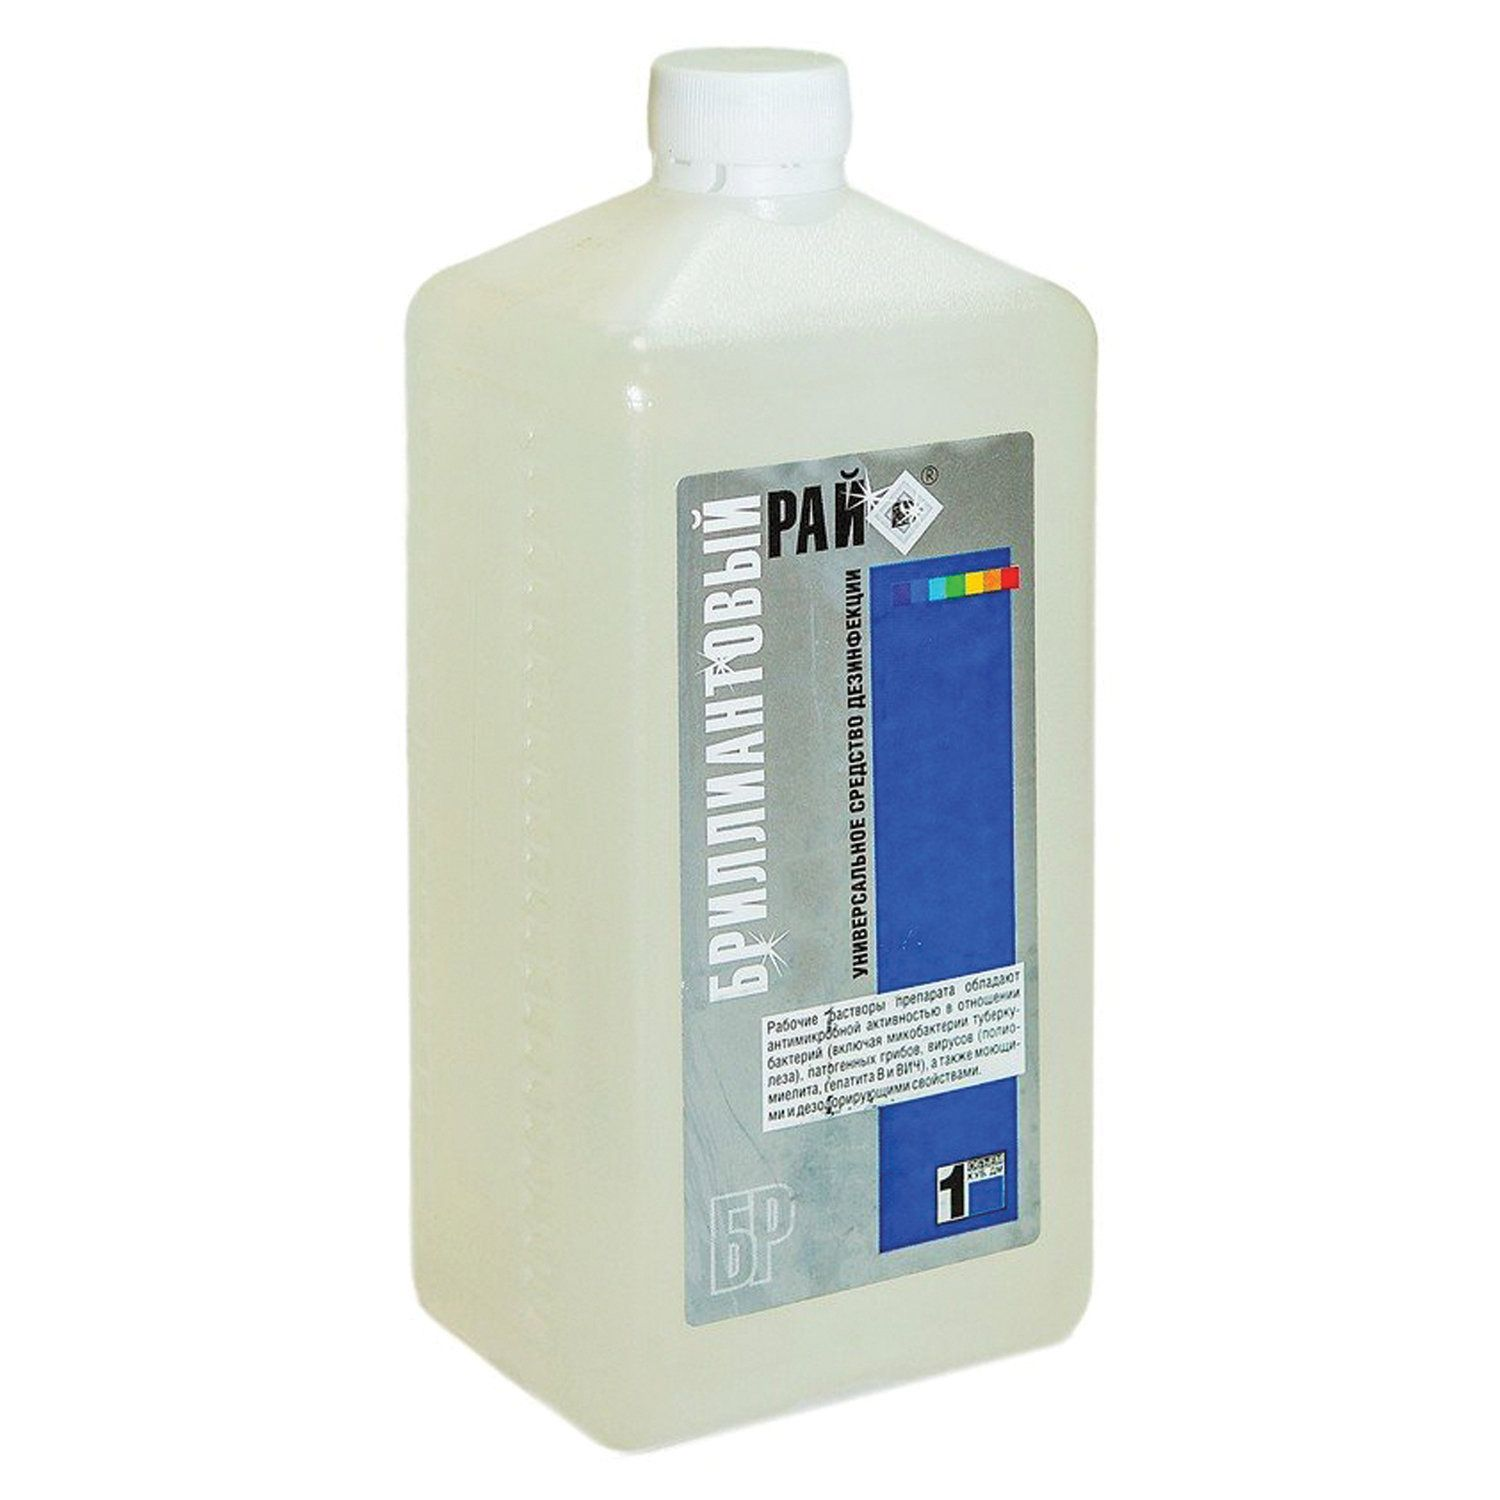 BRILLIANT / Disinfectant BRILLIANT PARADISE 1 l, concentrate